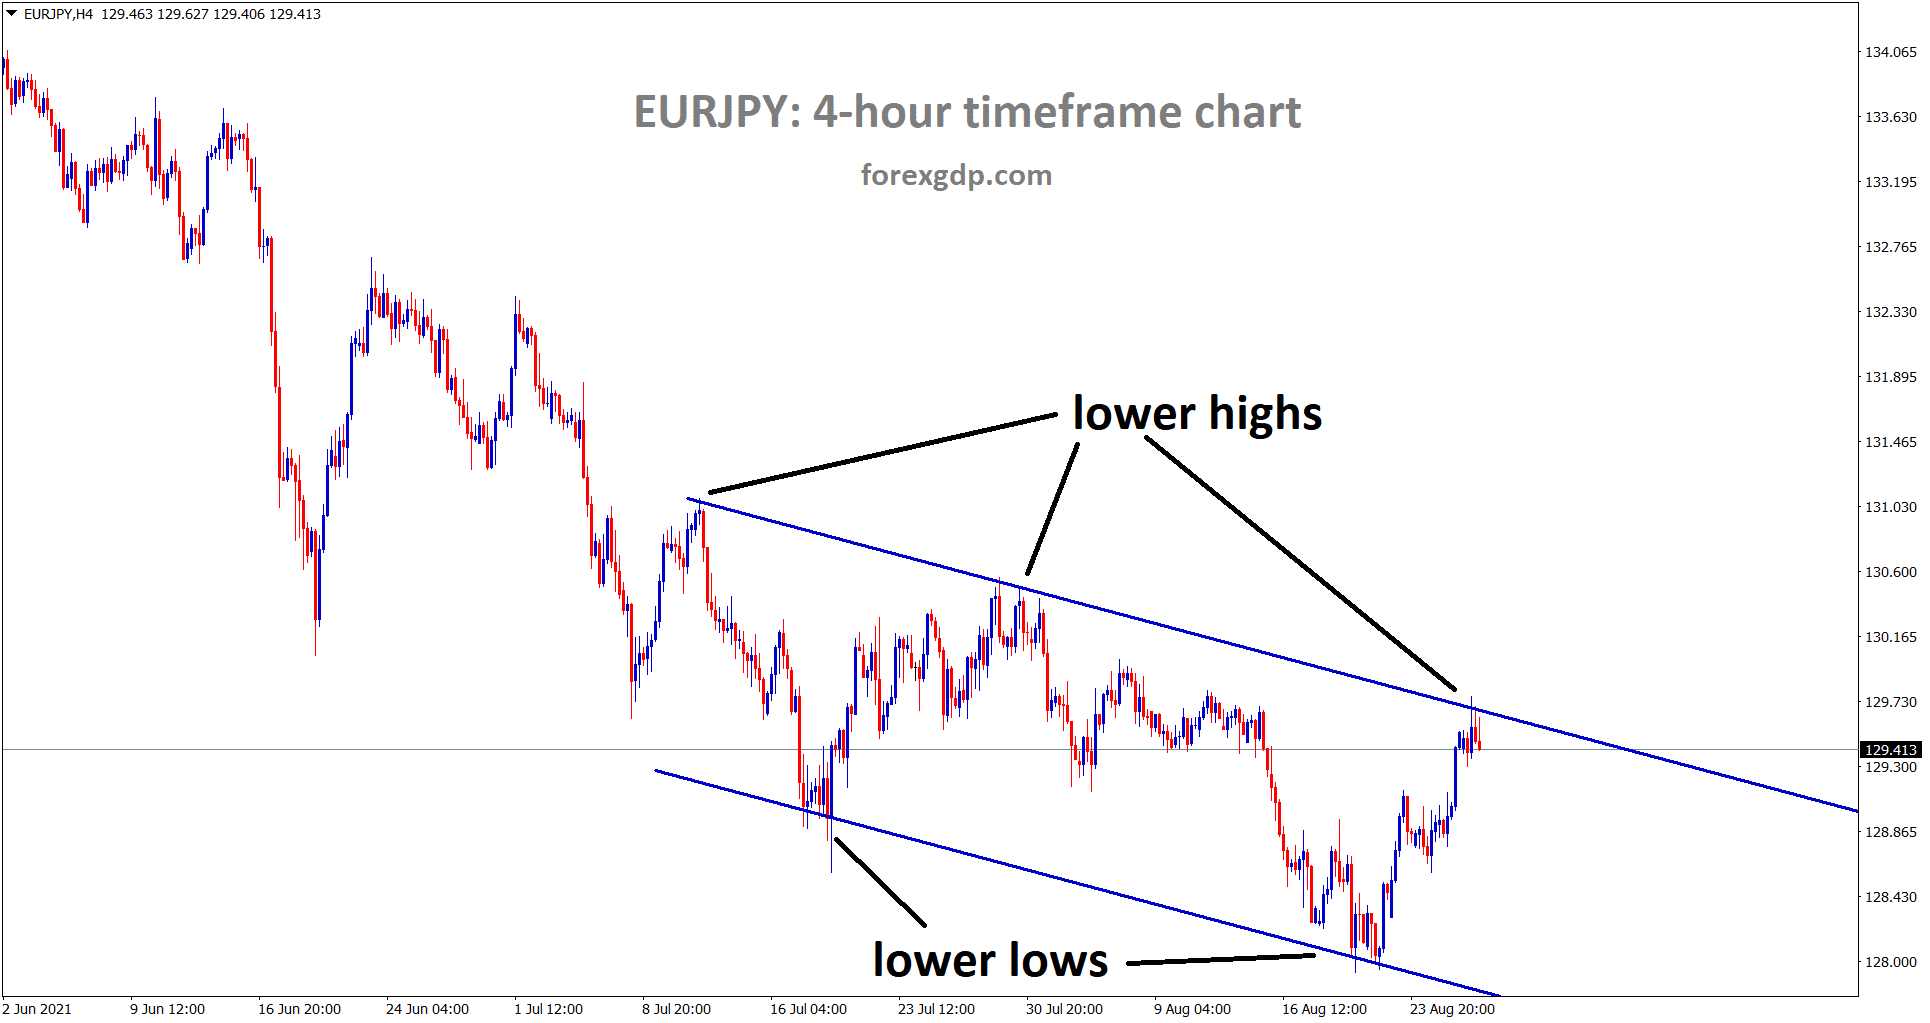 EURJPY is moving in a small descending channel range